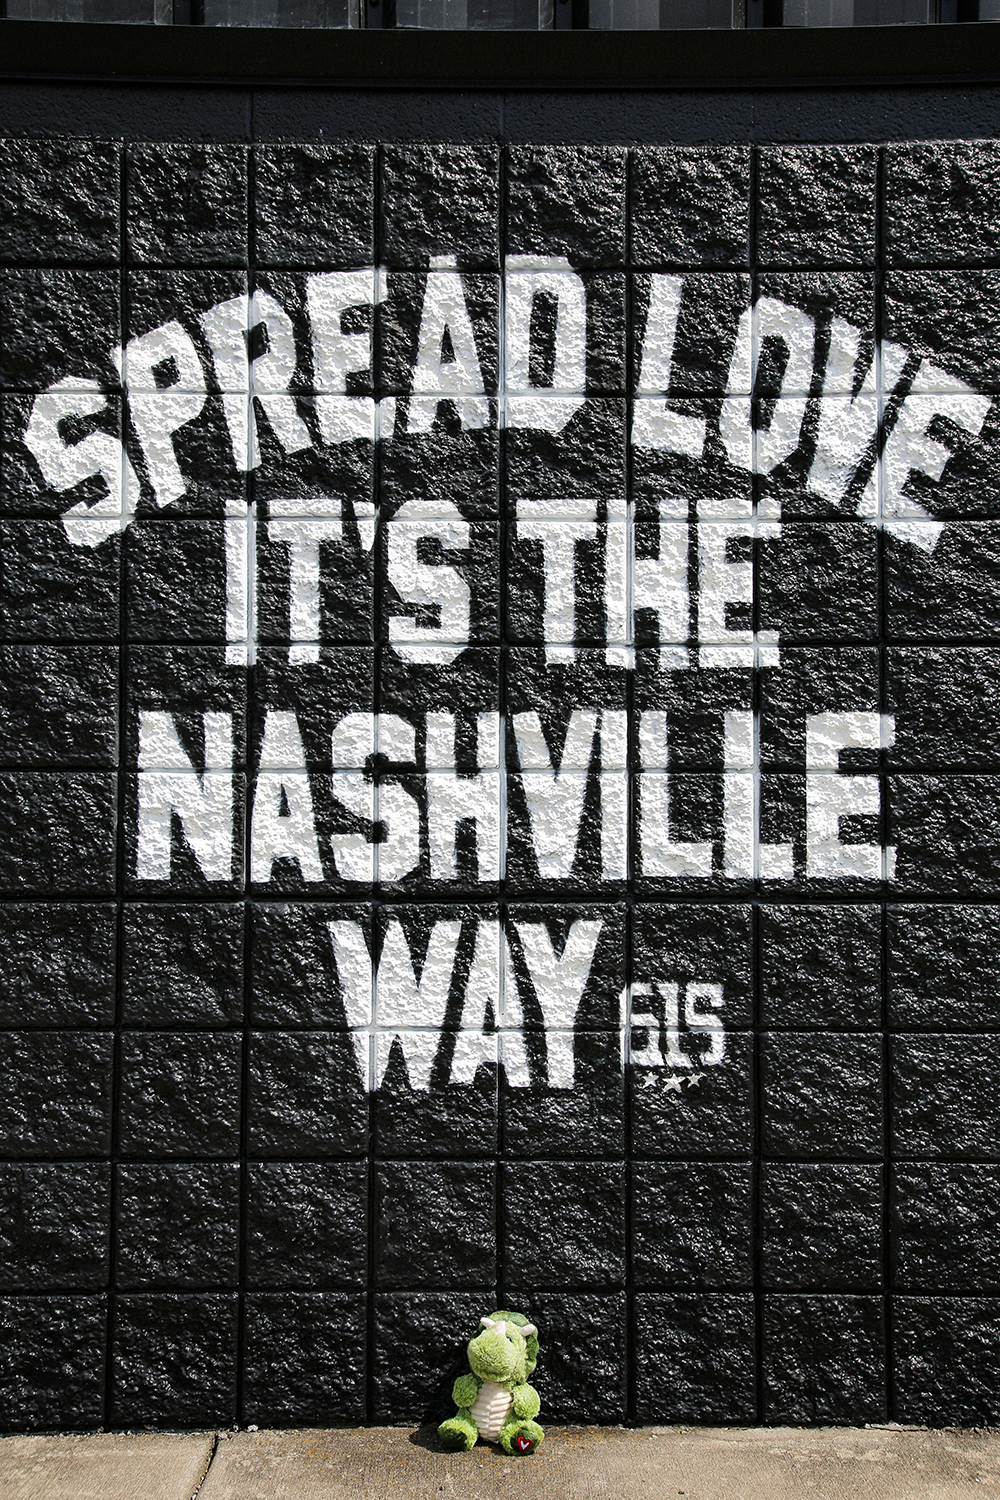 Spread Love It's the Nashville Way